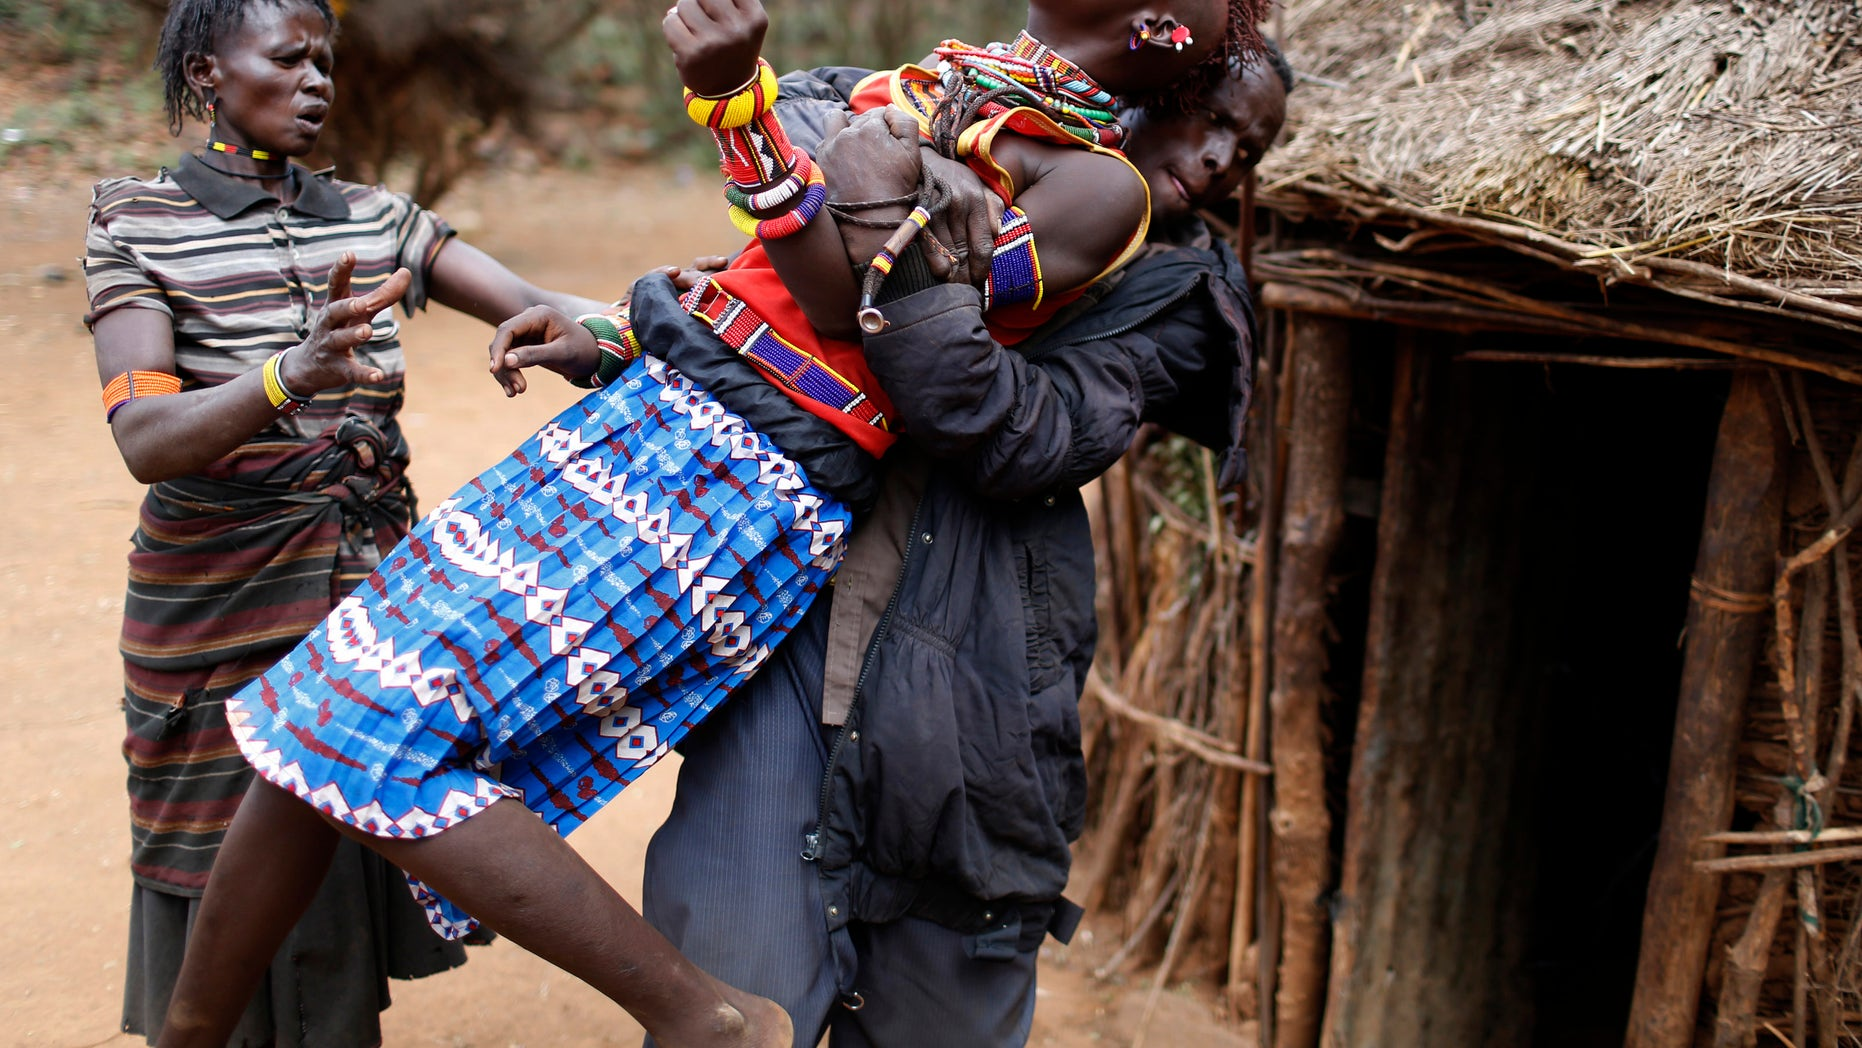 A man holds a girl as she tries to escape when she realised she is to to be married, about 80 km (50 miles) from the town of Marigat in Baringo County December 7, 2014. REUTERS/Siegfried Modola